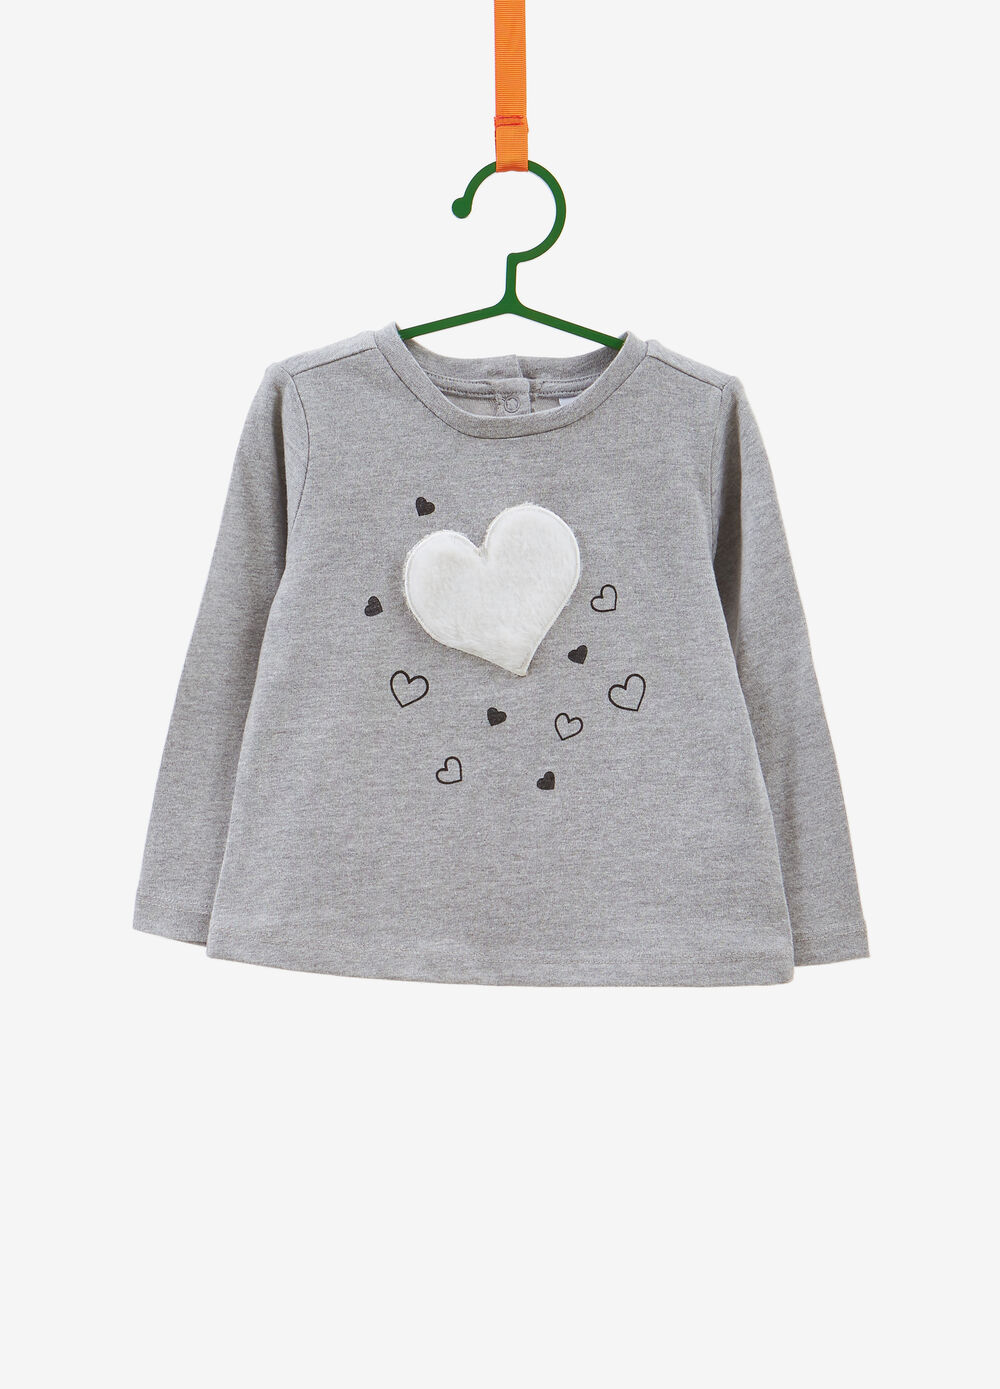 100% cotton T-shirt with heart patch